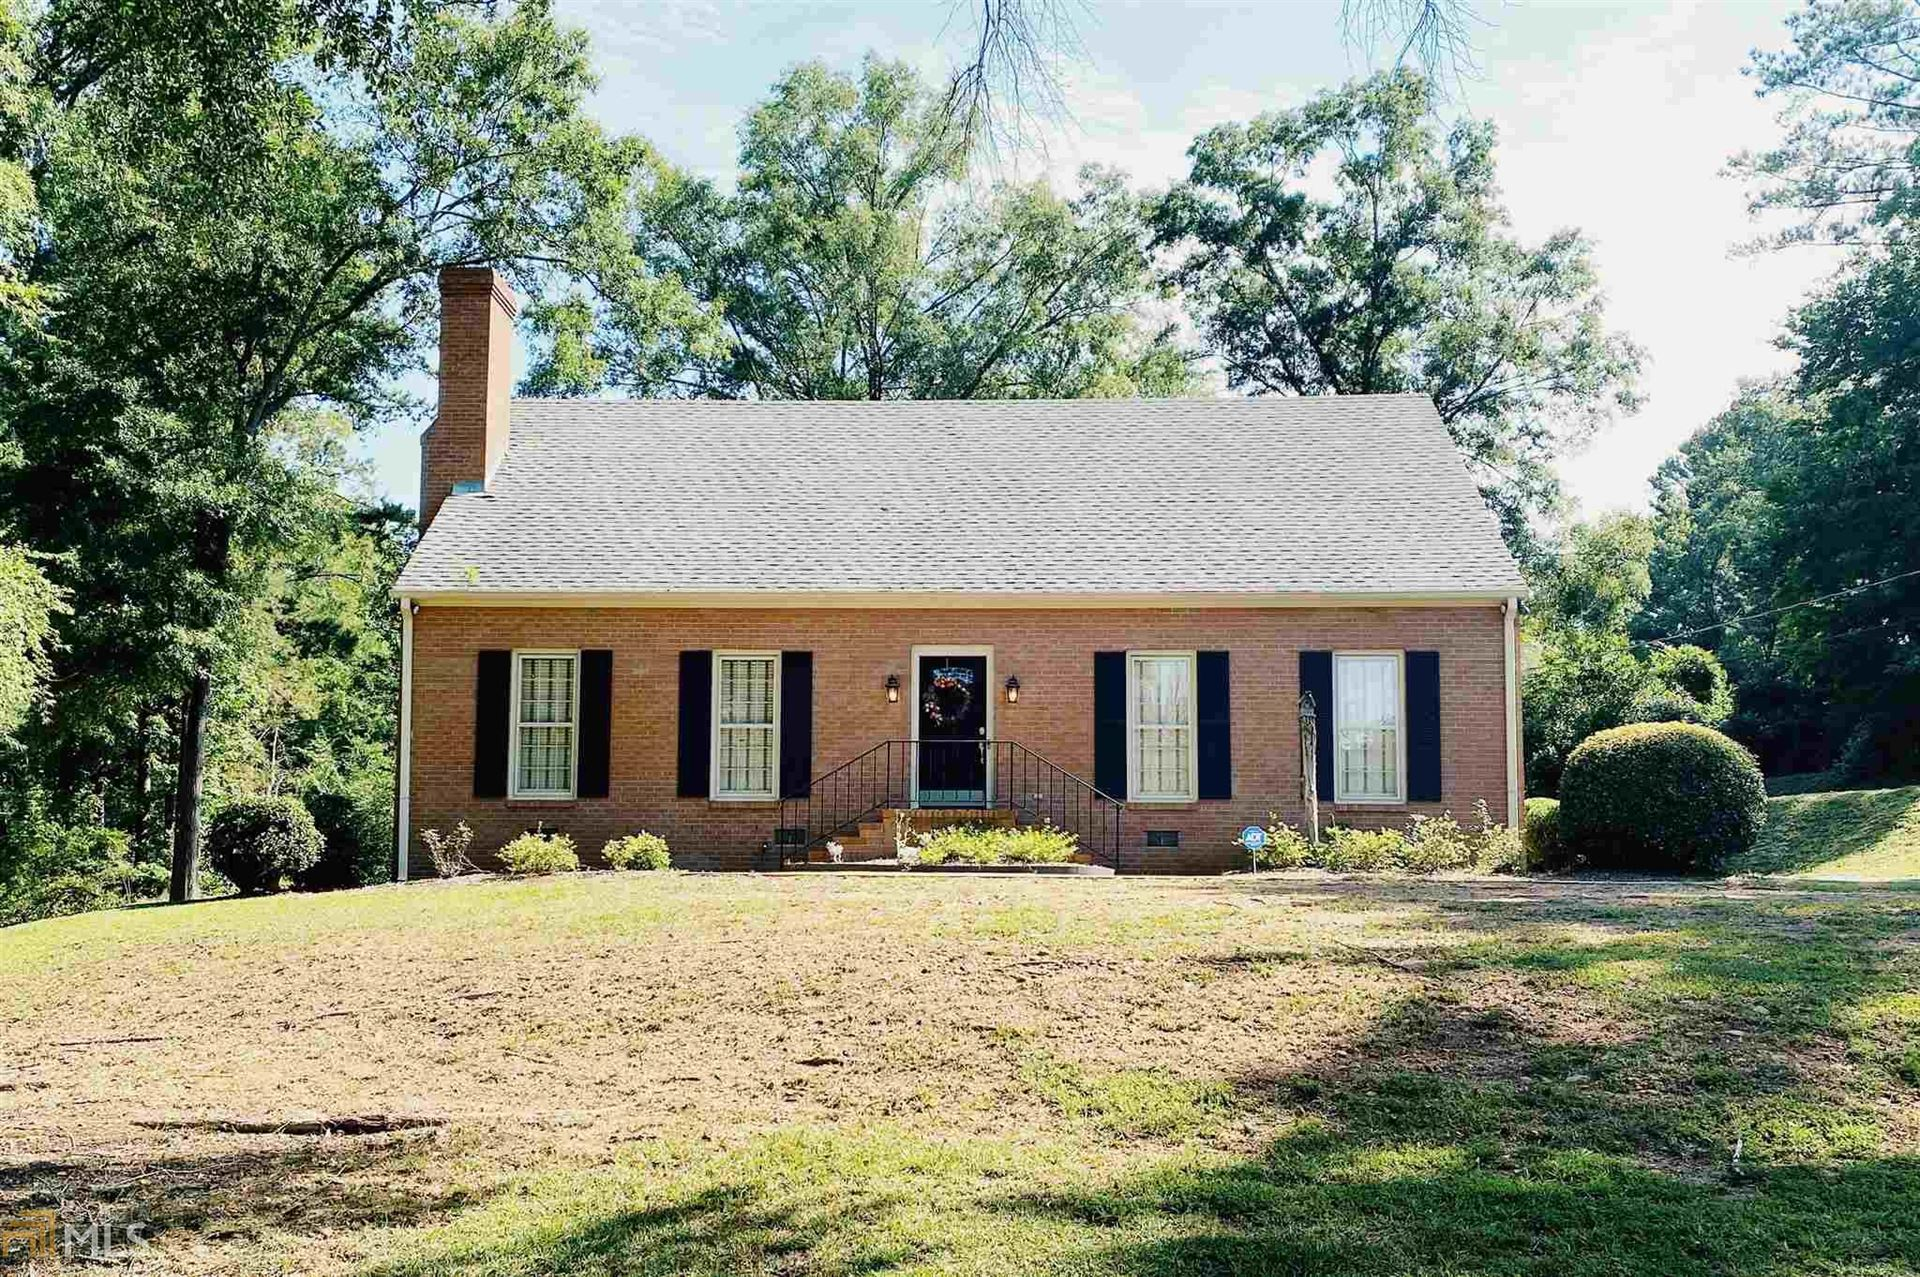 201 Briarcliff Rd, West Point, GA 31833 - #: 8816869